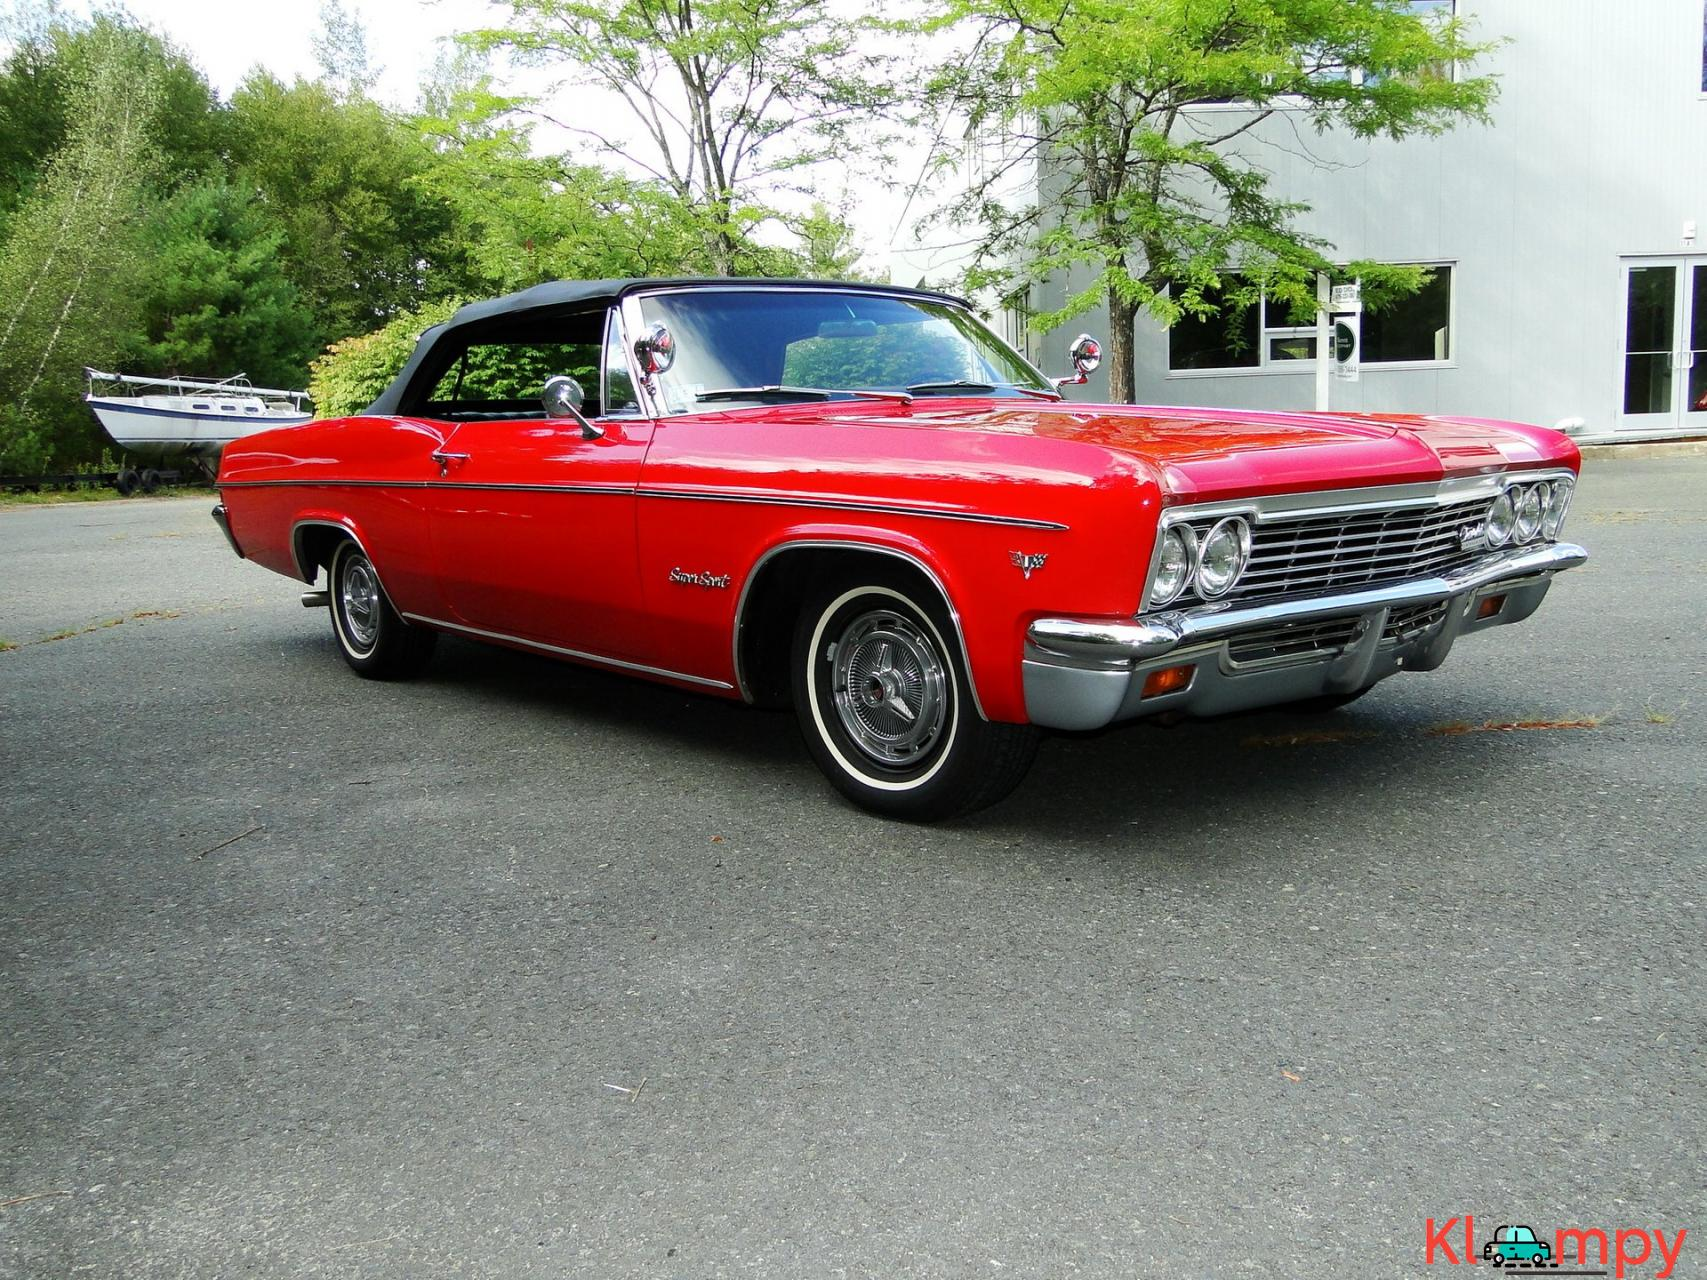 1966 Chevrolet Impala SS Convertible Regal Red V8 - 1/23